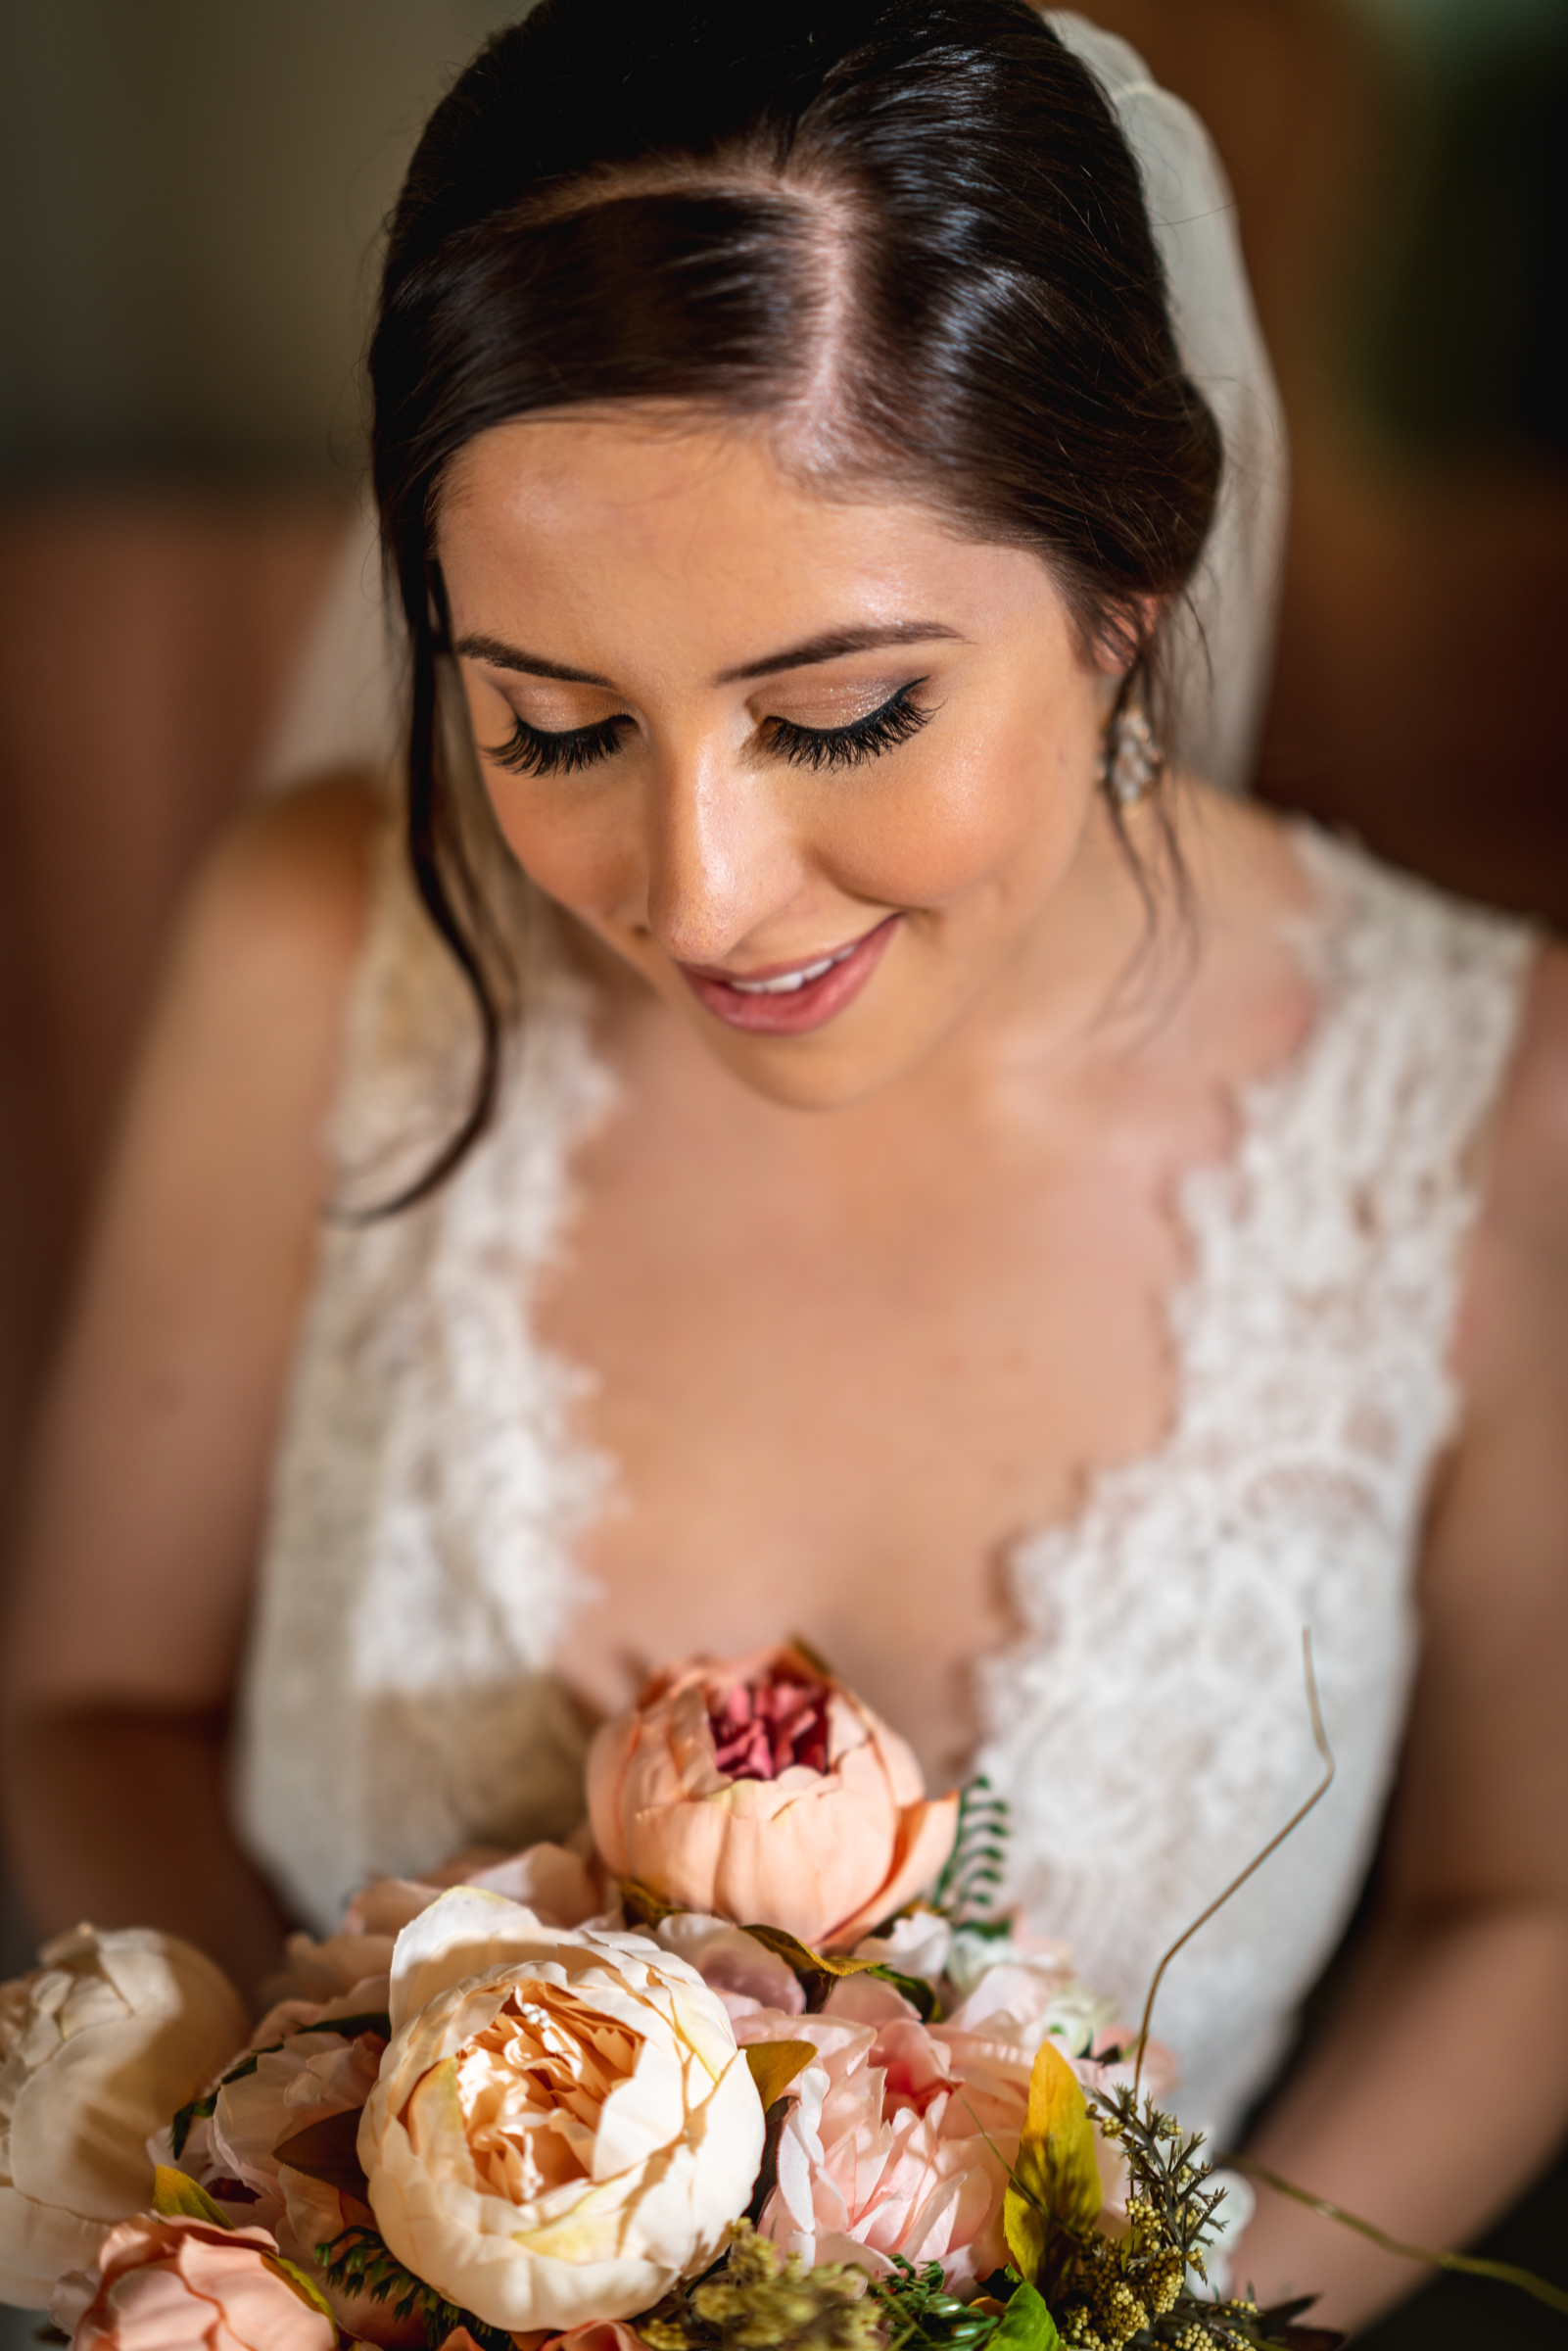 candid-bride-bouquet-photography.jpg